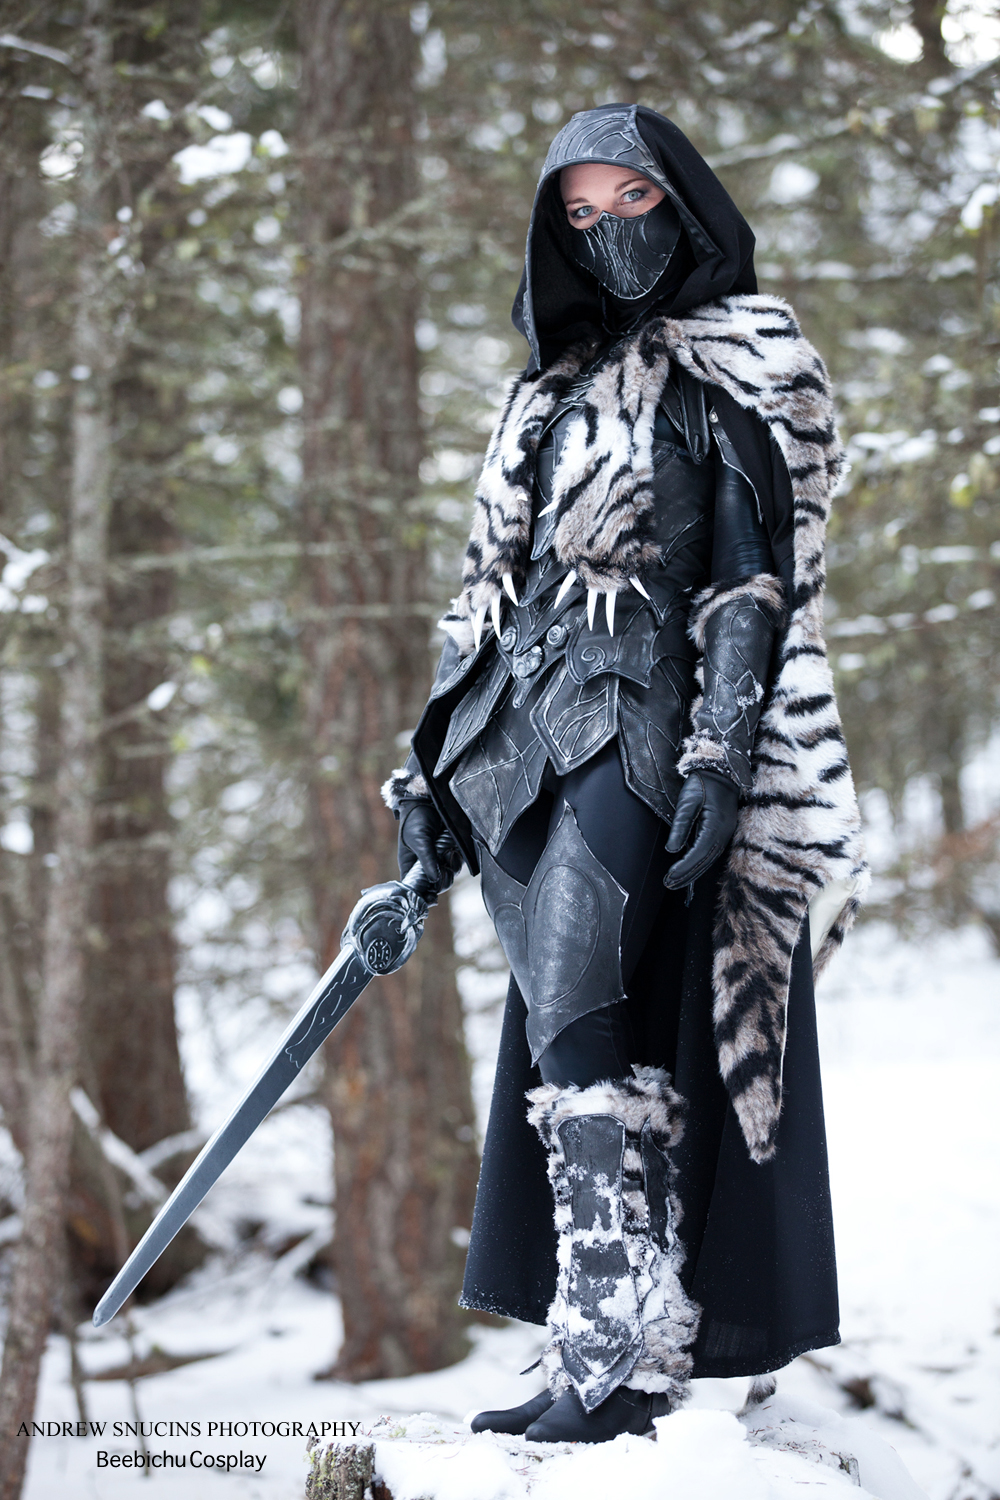 Nightingale Armor with a Sabre Cat Pelt